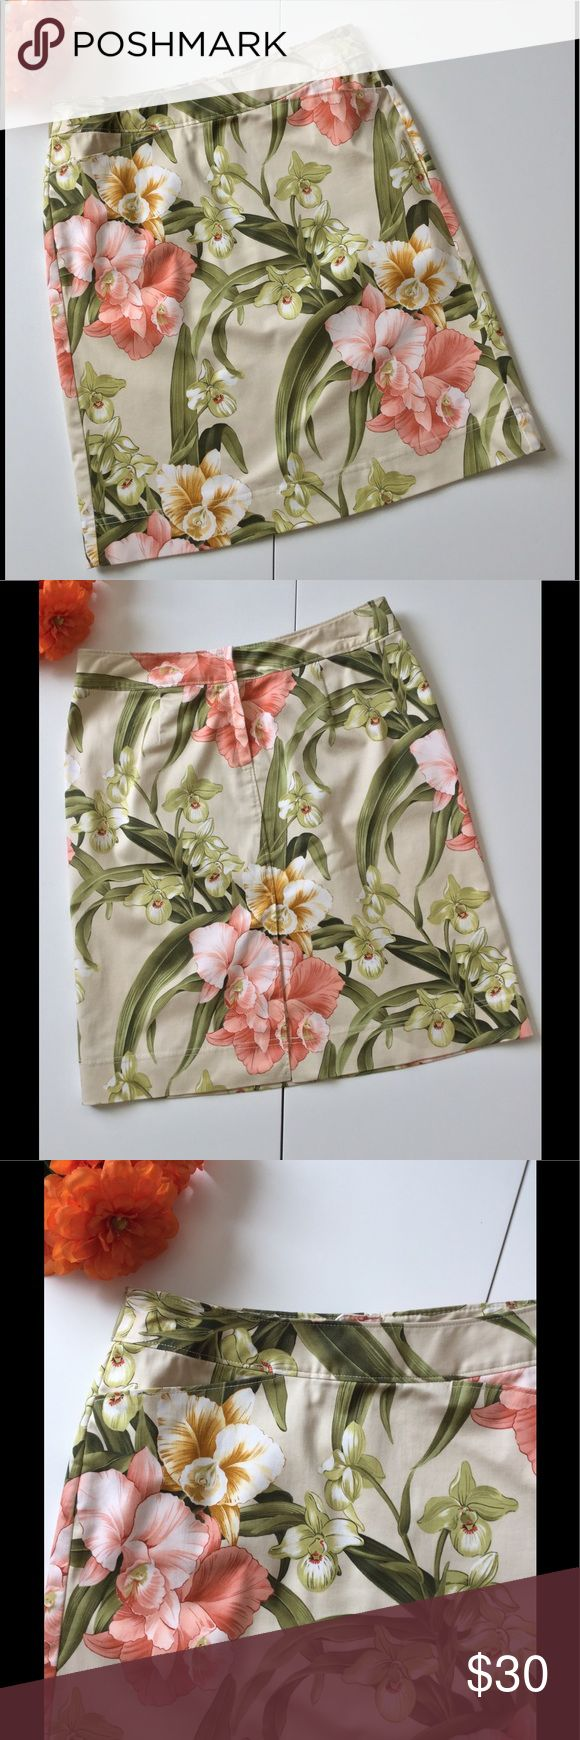 """🆕Listing 🌴 Tommy Bahama Floral Skirt Pockets 🌴 Beautiful tropical Floral print in shades of peach & green. Excellent Tommy Bahama quality. Two front pockets, back kick vent, concealed back zipper, accent stitching. 98% cotton 2% Lycra. Machine wash. Excellent used condition. Worn twice. 29"""" waist 38"""" hip 20"""" length  🎀Bundle discount  ⭐️5 star rated Suggested User 🚭Smoke free home 🚫No trades please  😍 Thank you for shopping with me. Please ask all questions before purchase Tommy Bahama…"""